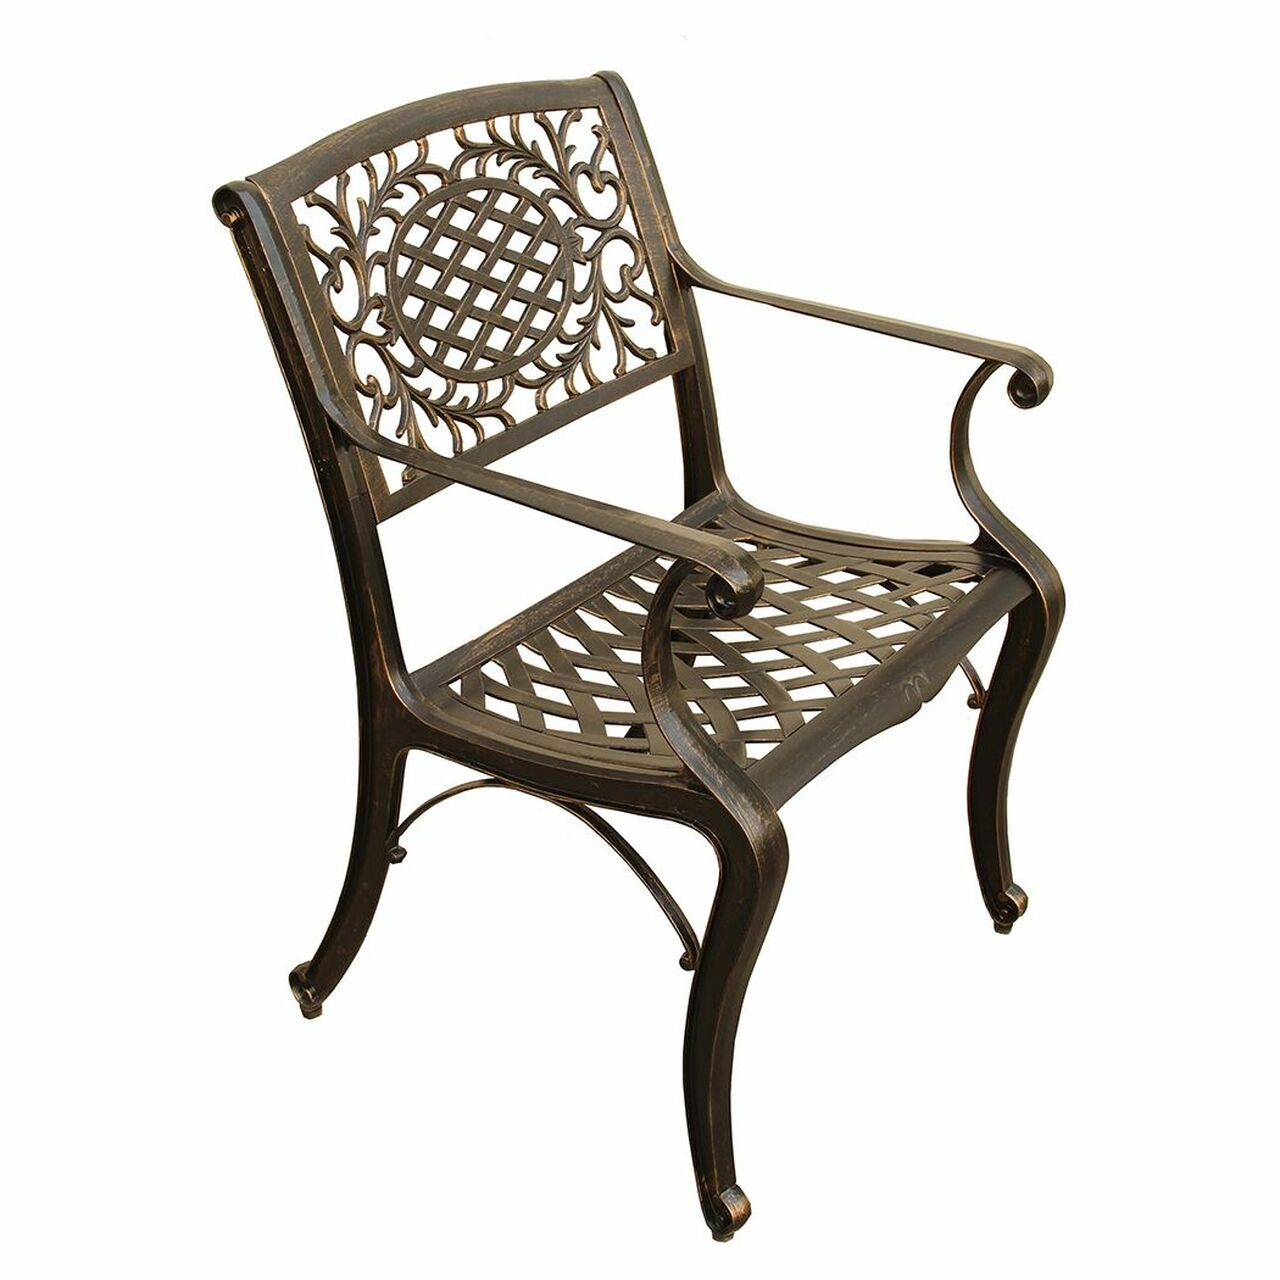 35u201d Bronze Ornate Lattice Round Aluminum Outdoor Patio Dining Chair    32739693